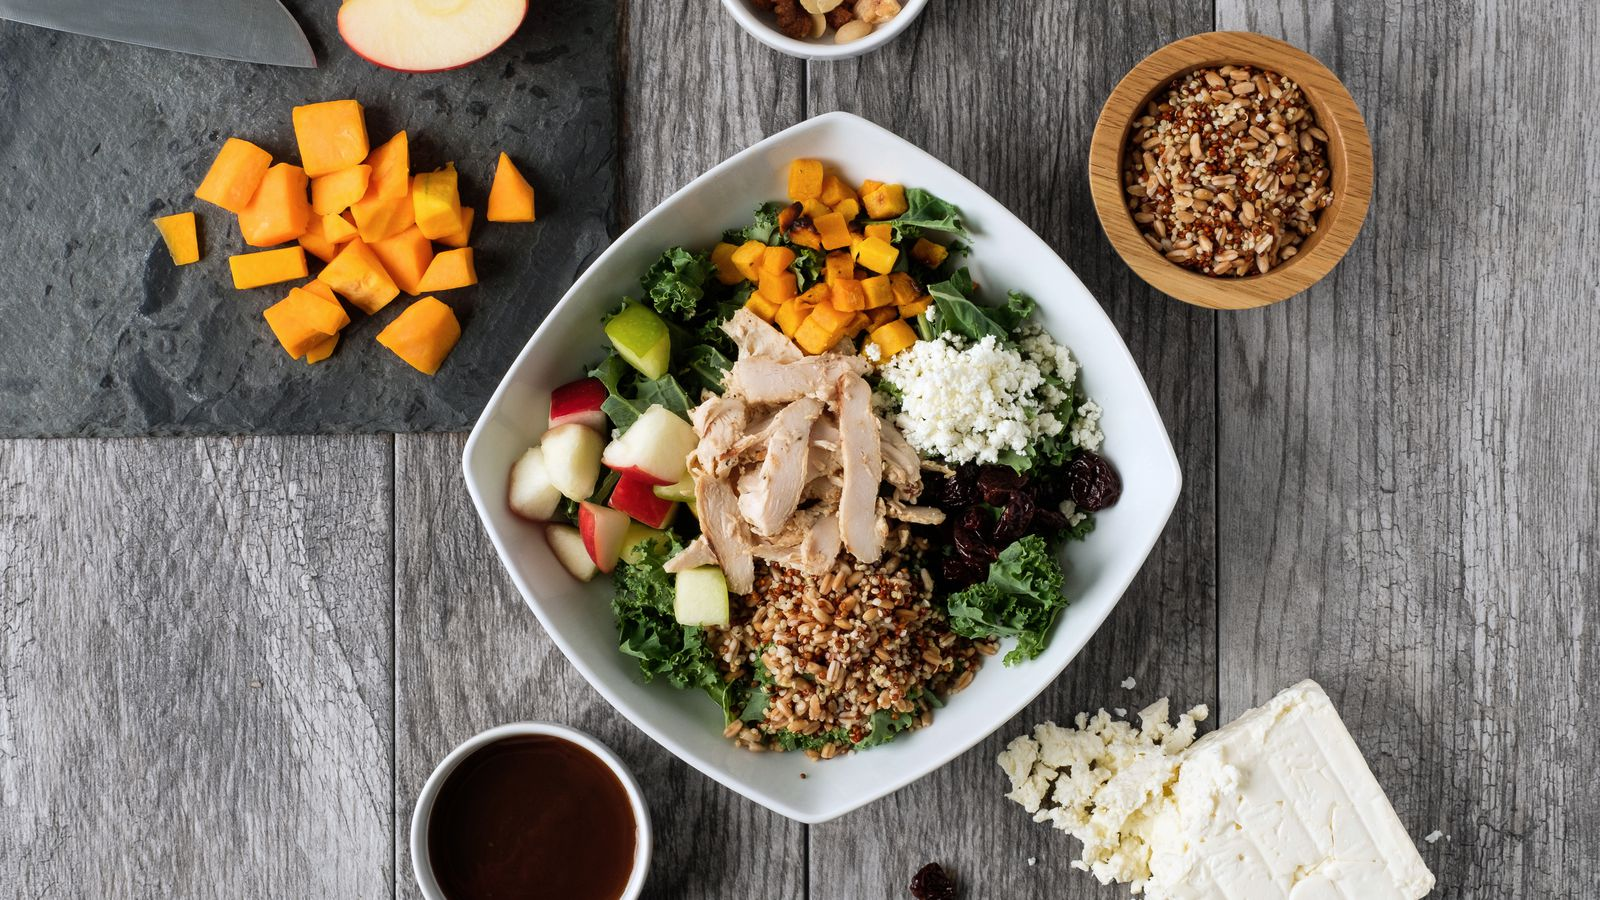 Would You Order a Quinoa Bowl at Chick-fil-A? - Eater